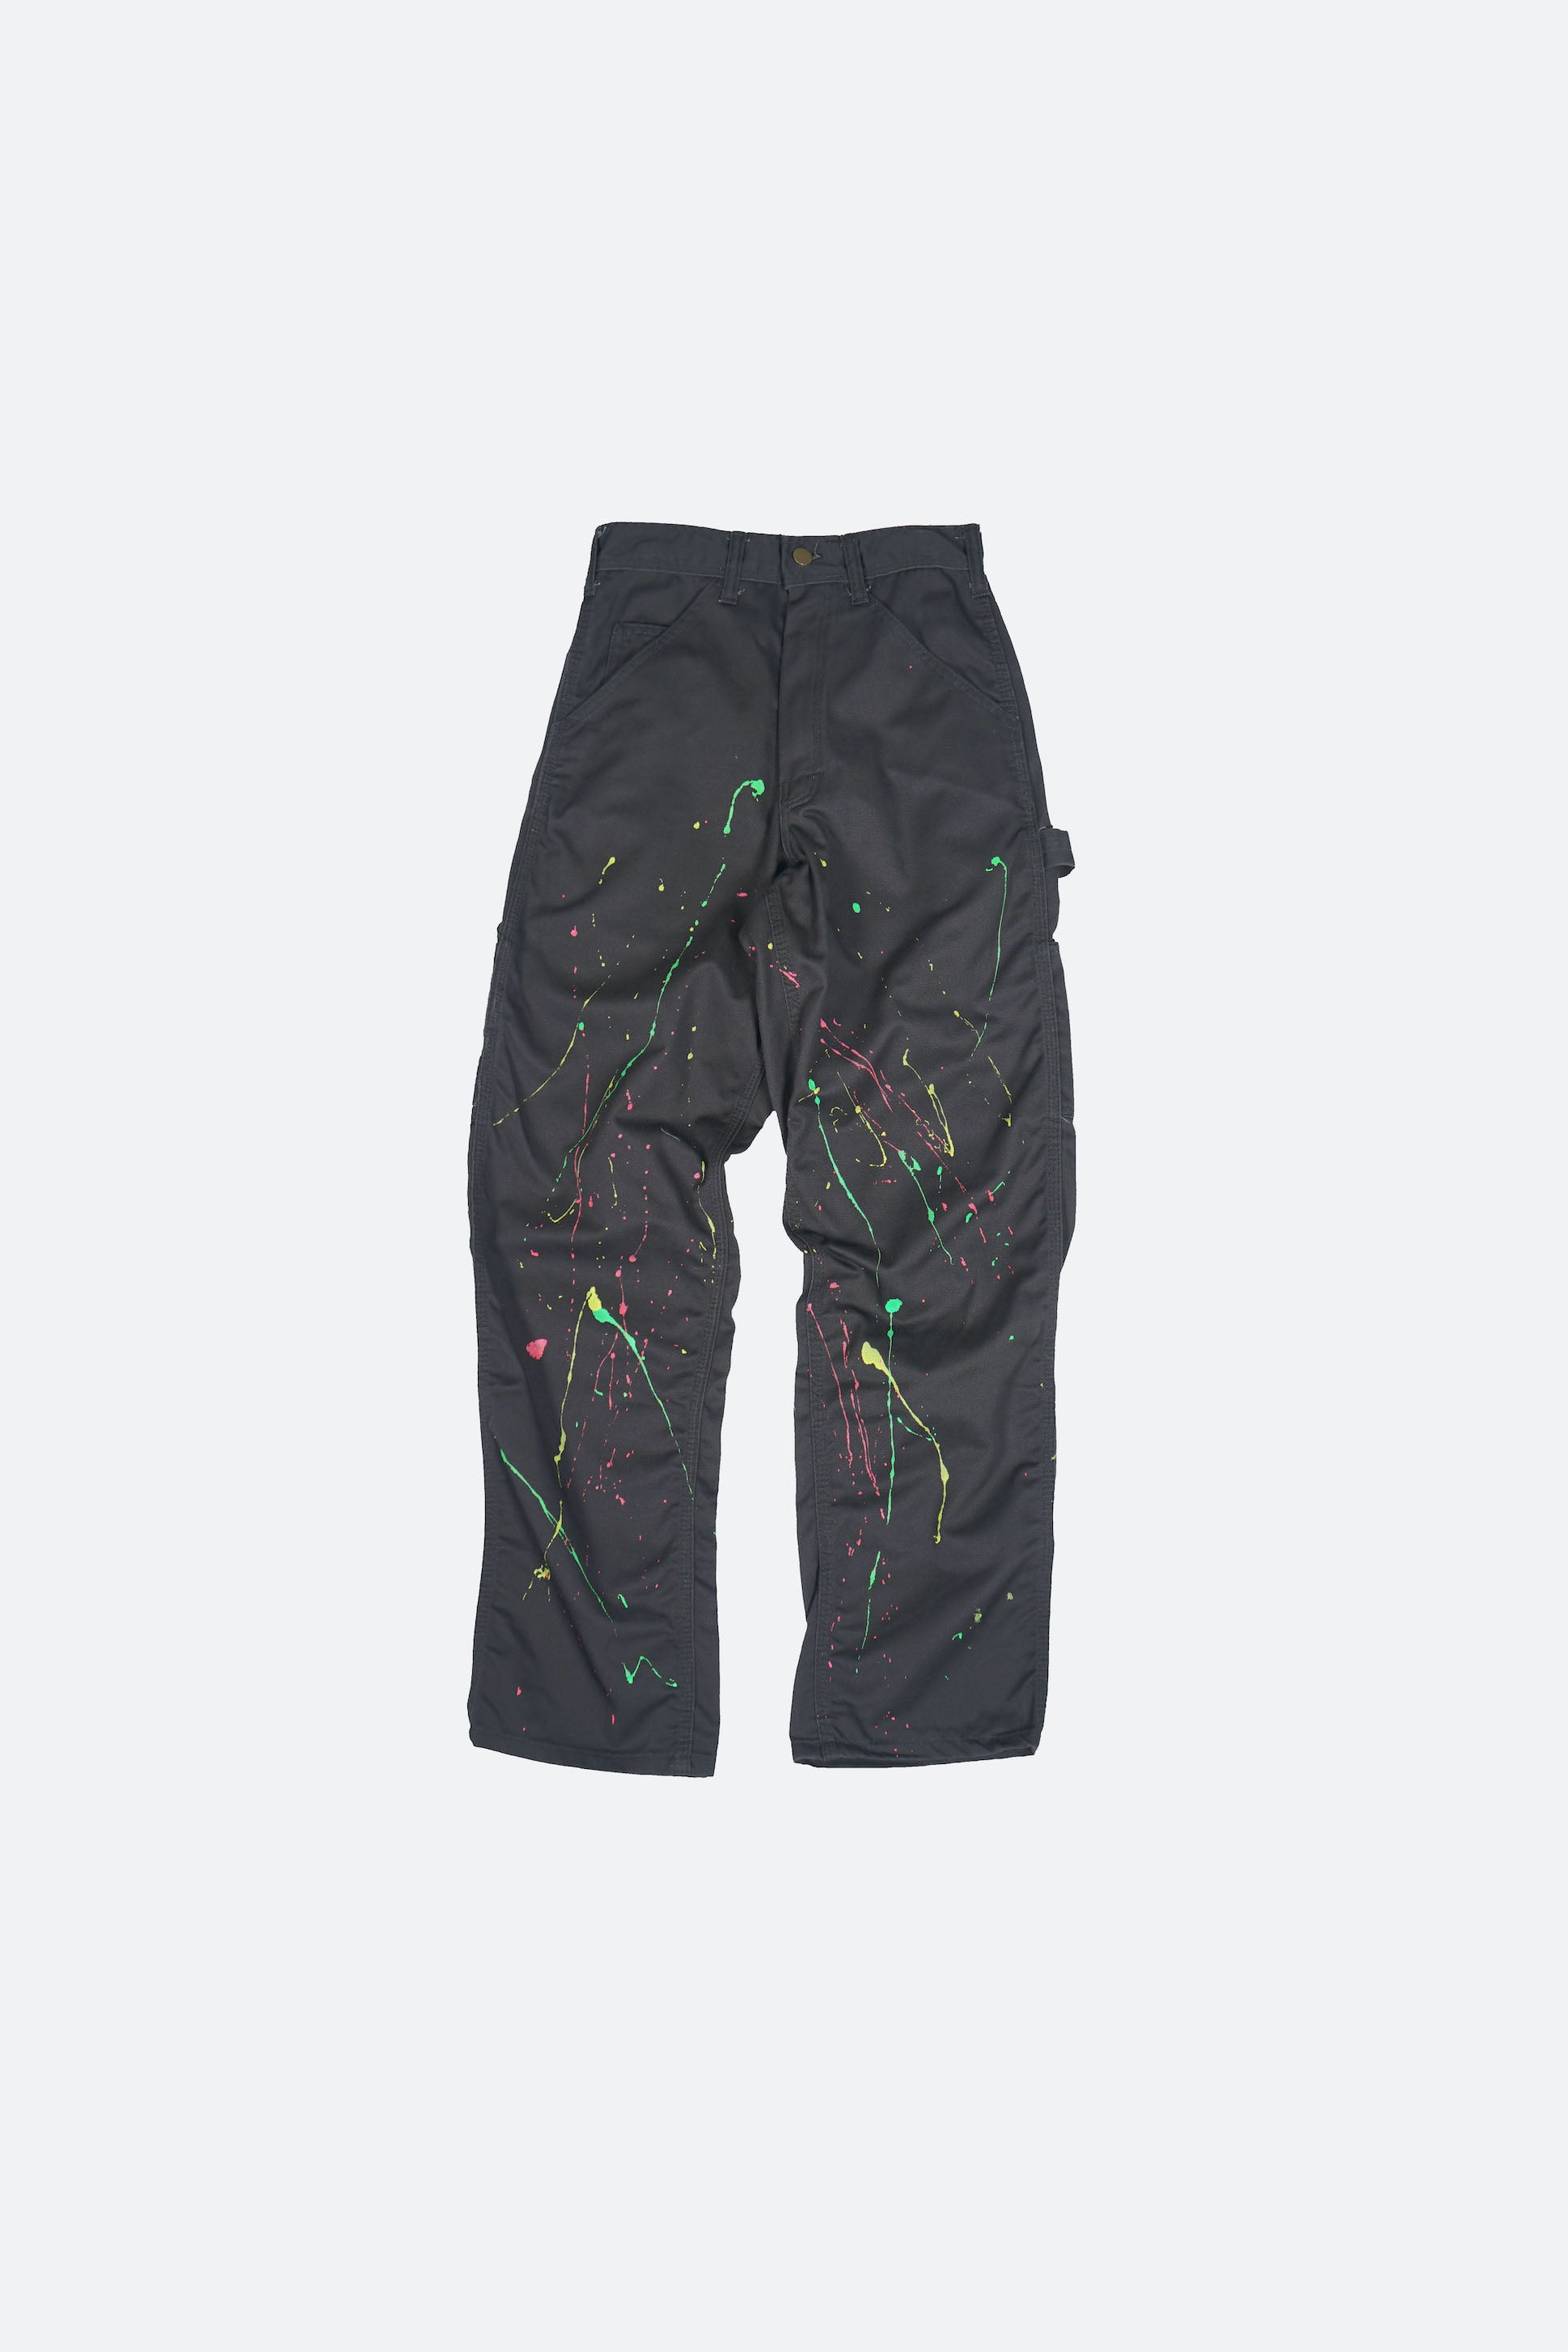 Splatter Painted Carpenter Pants W26